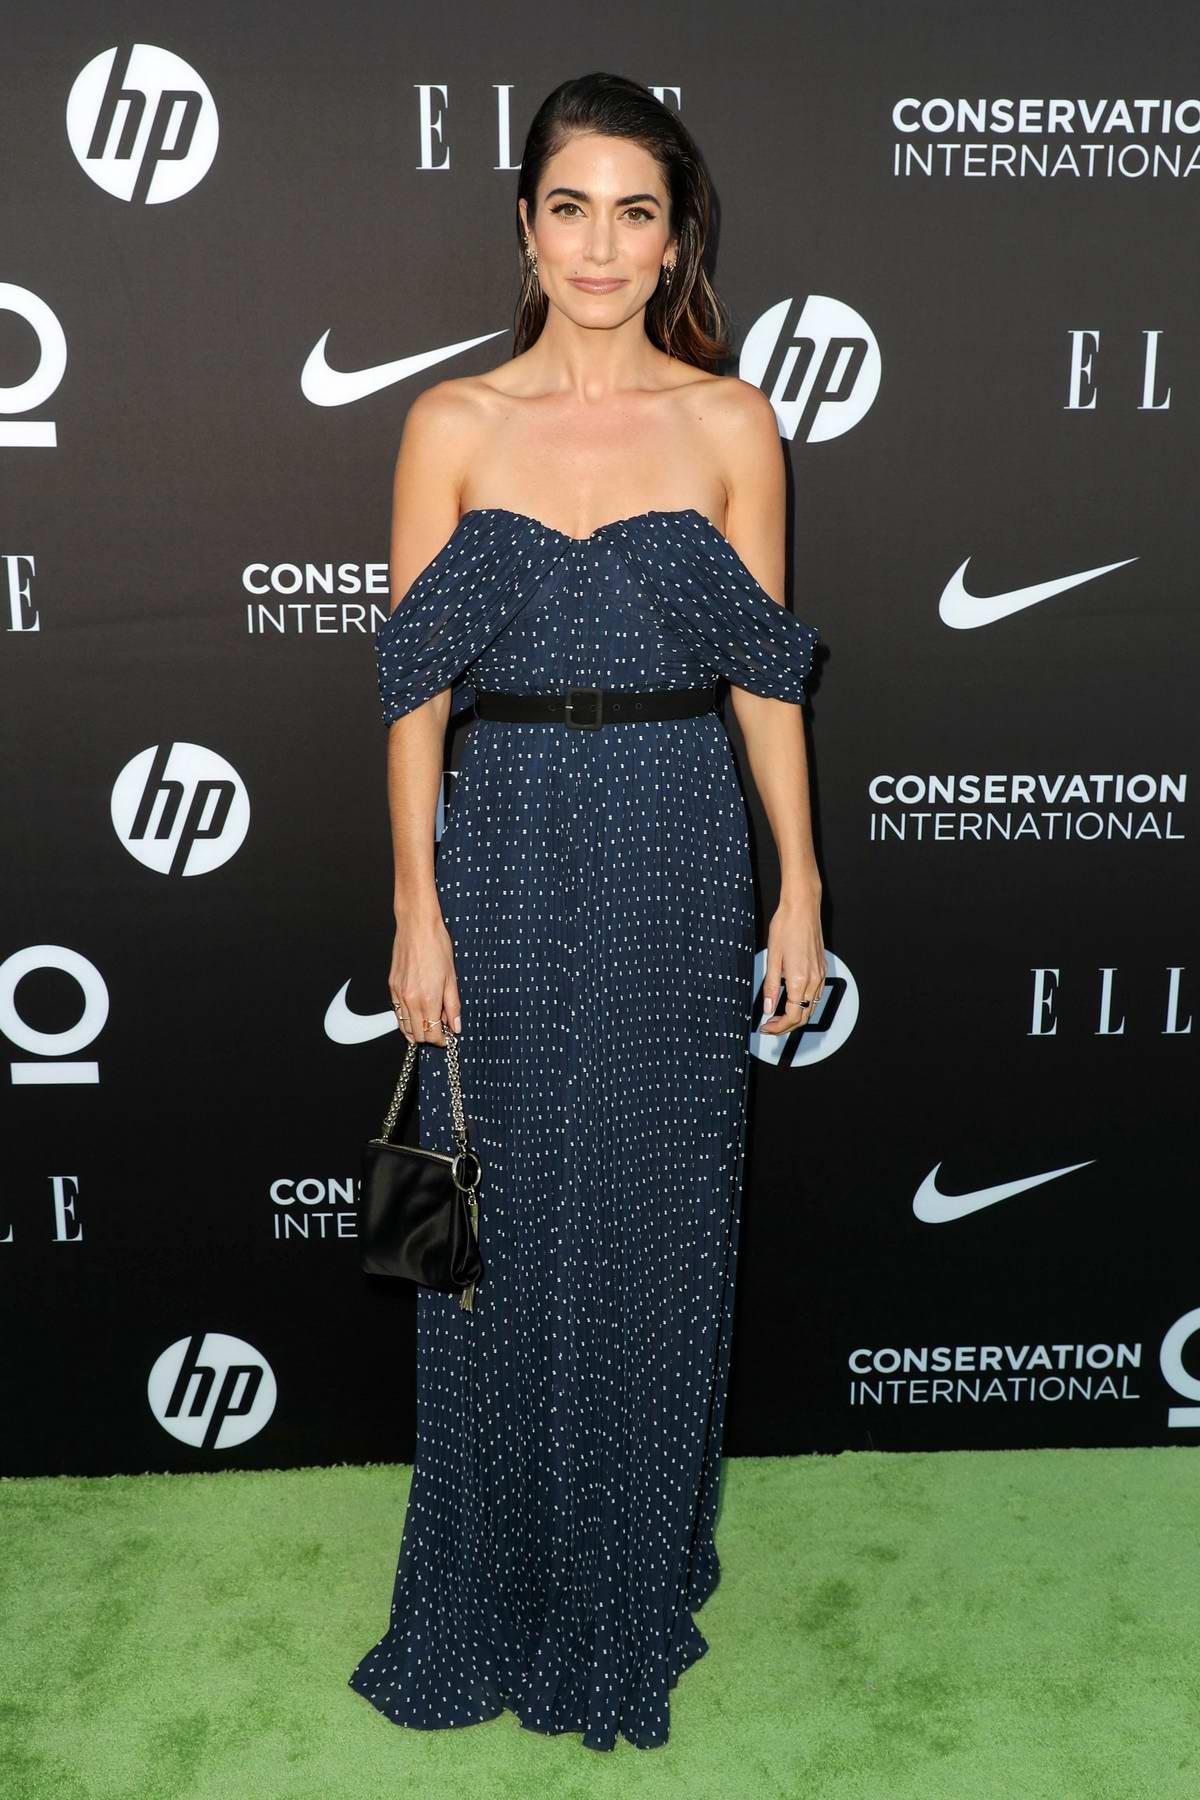 Nikki Reed attends the Women In Conservation event at Milk Studios in Hollywood, California